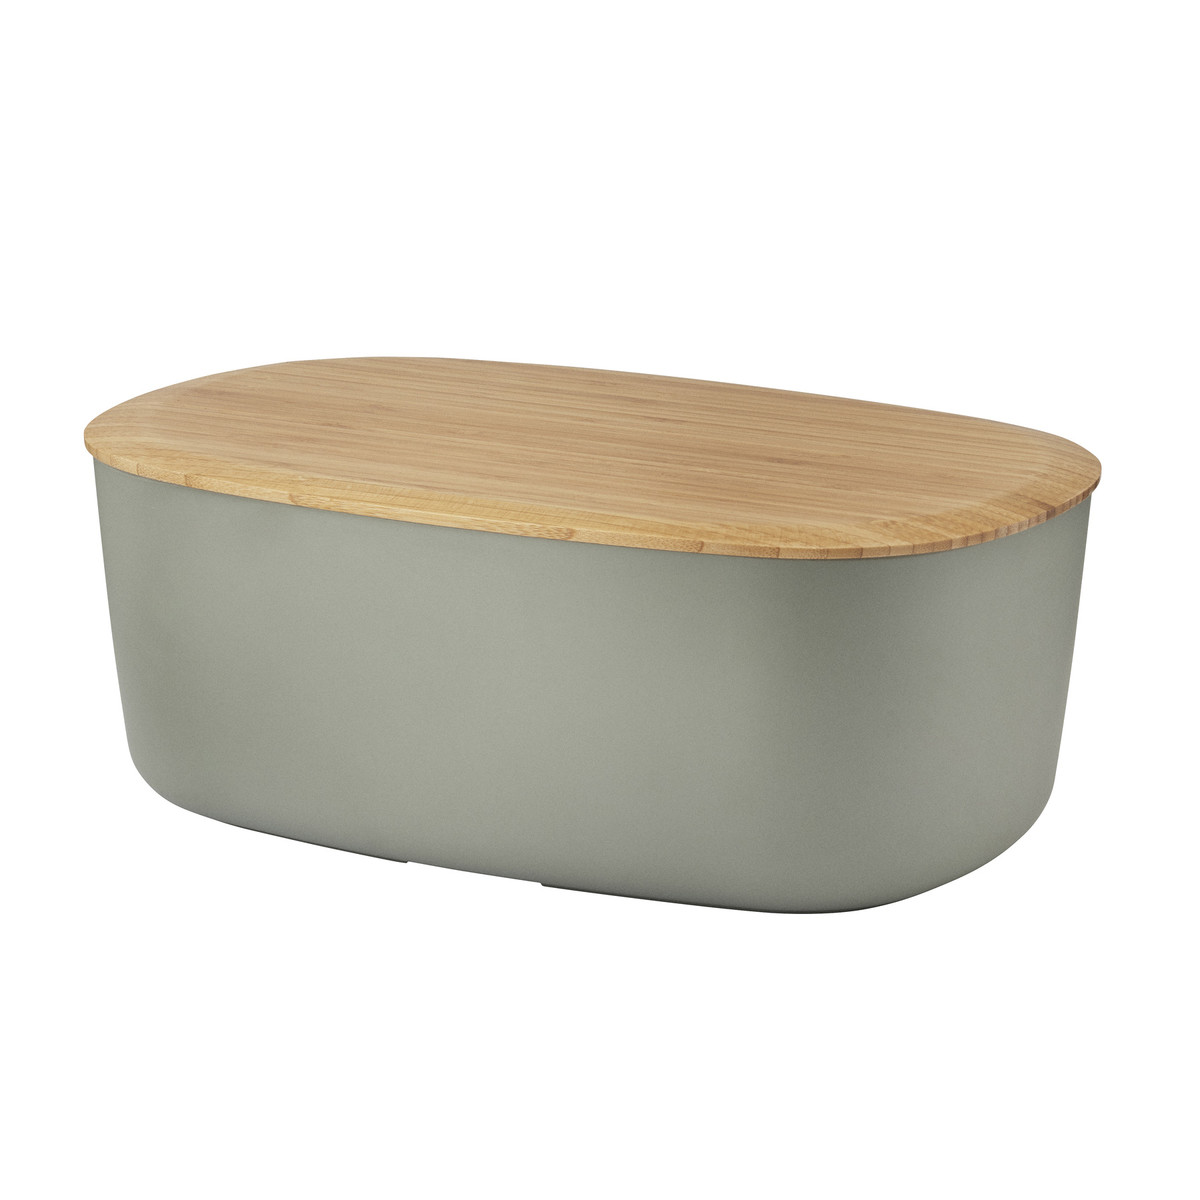 Box-it bread box grey